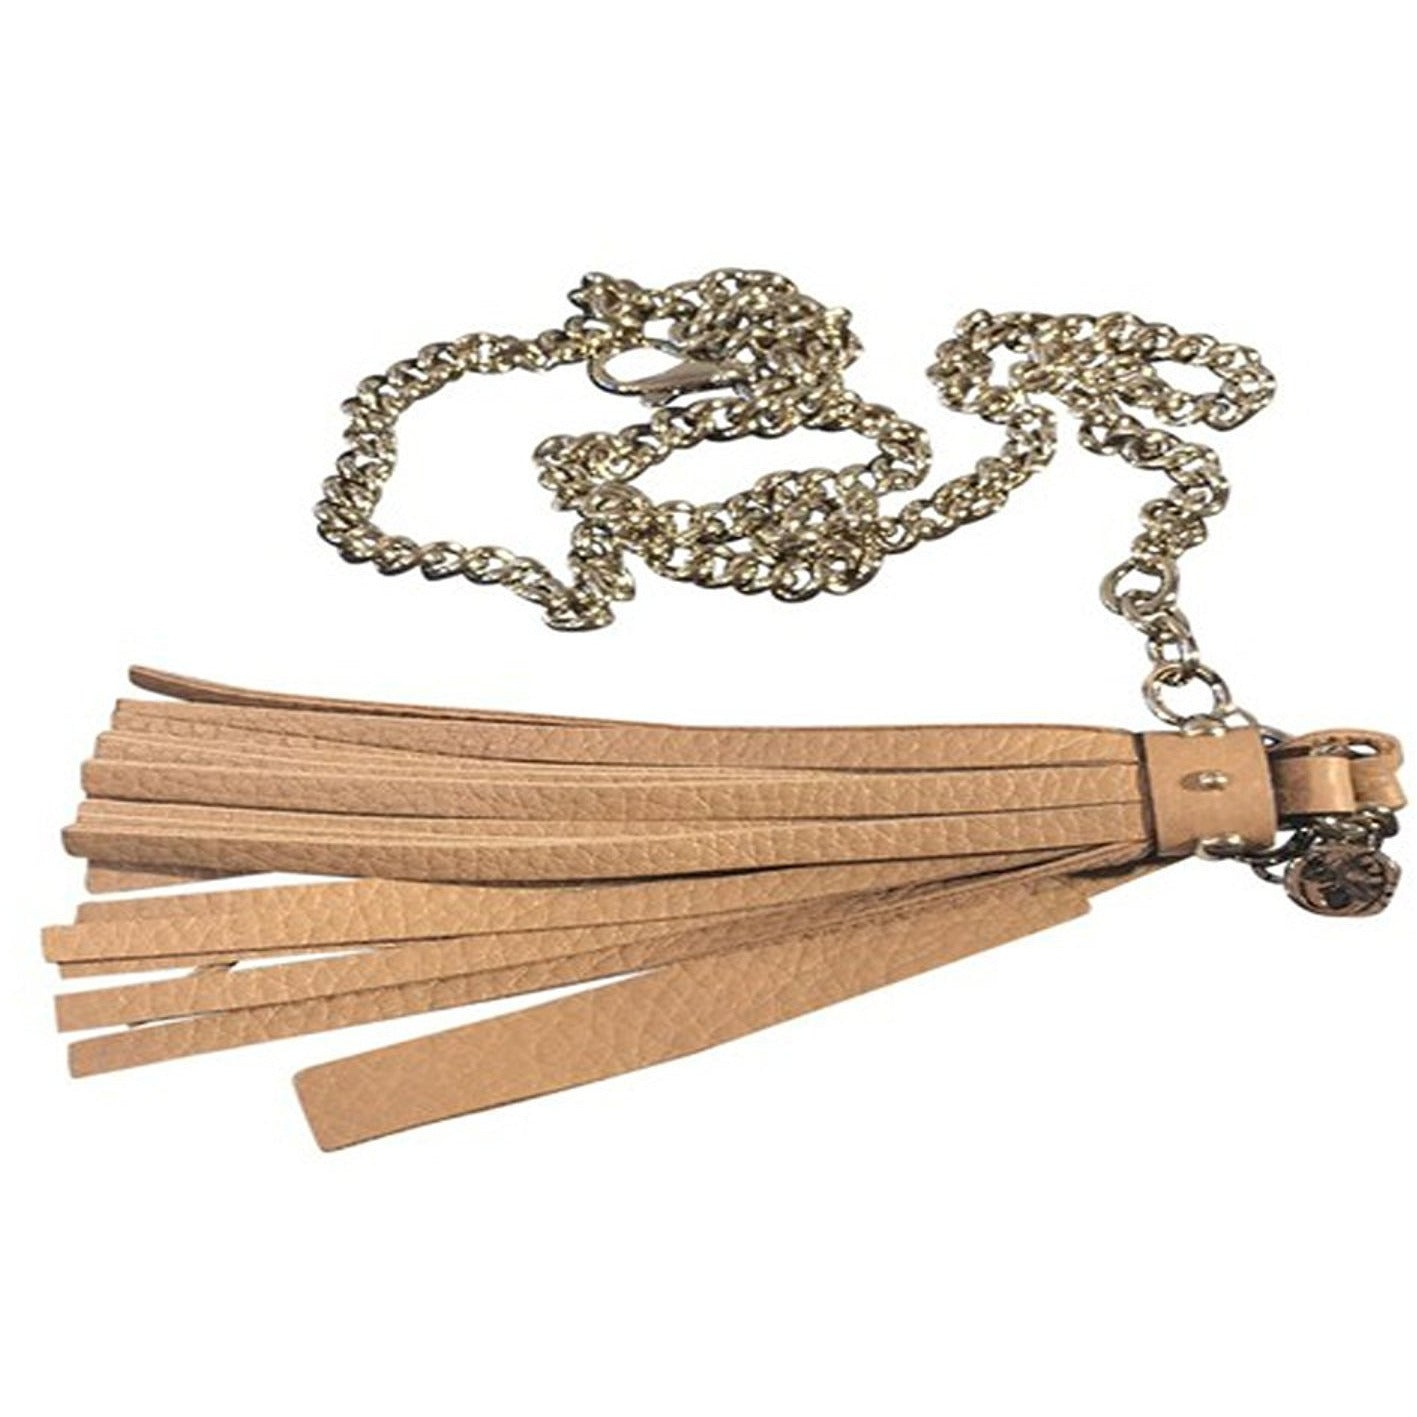 Gucci Women's Leather Tassel Gold Chain Belt Camelia Beige Size (38) 388992